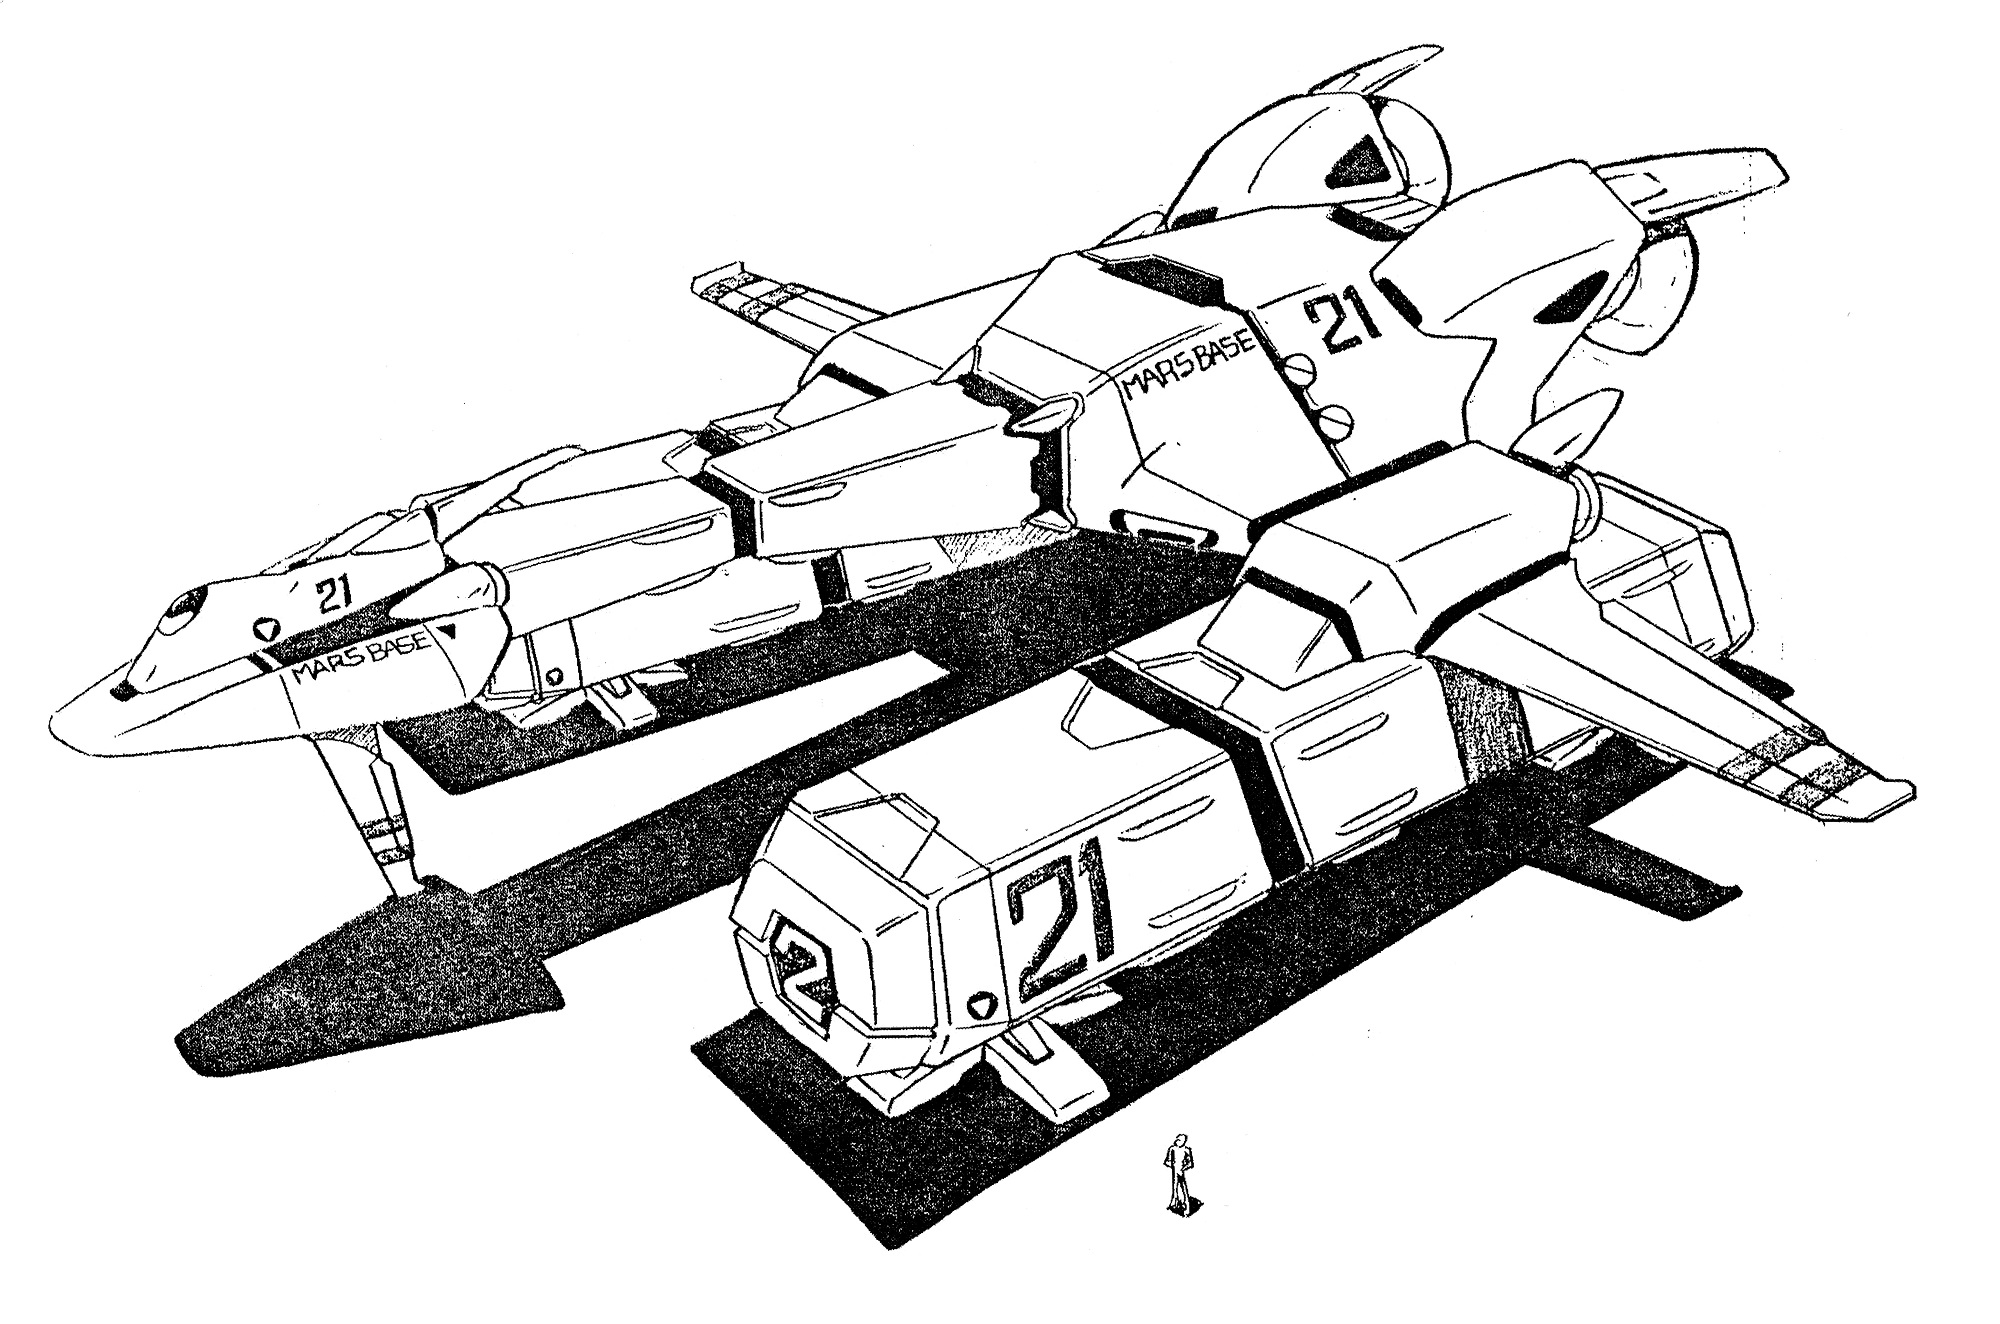 lca-12-horizont-cargo-dropship-aerospacecraft-02